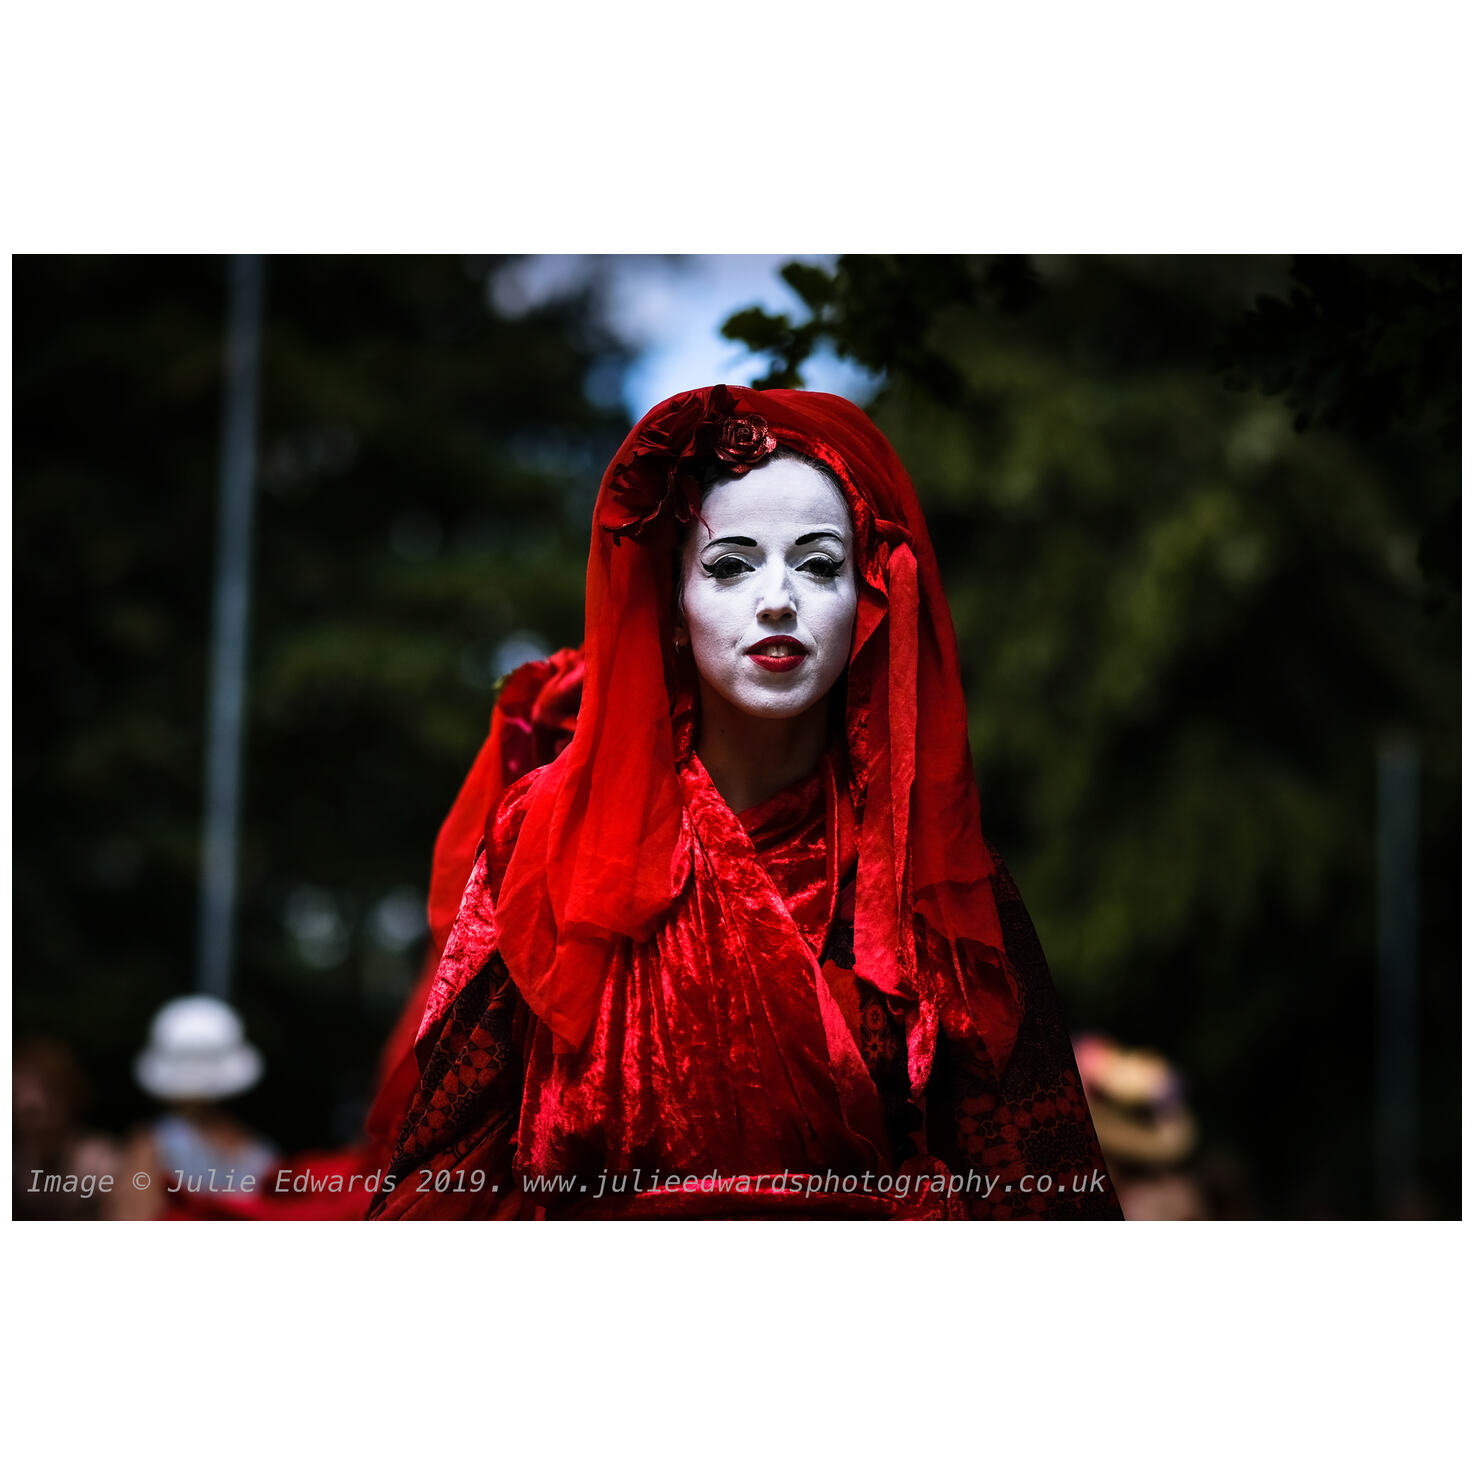 Extinction Rebellion The Red Brigade at the WOMAD Festival. X-T2 & XF90@F2